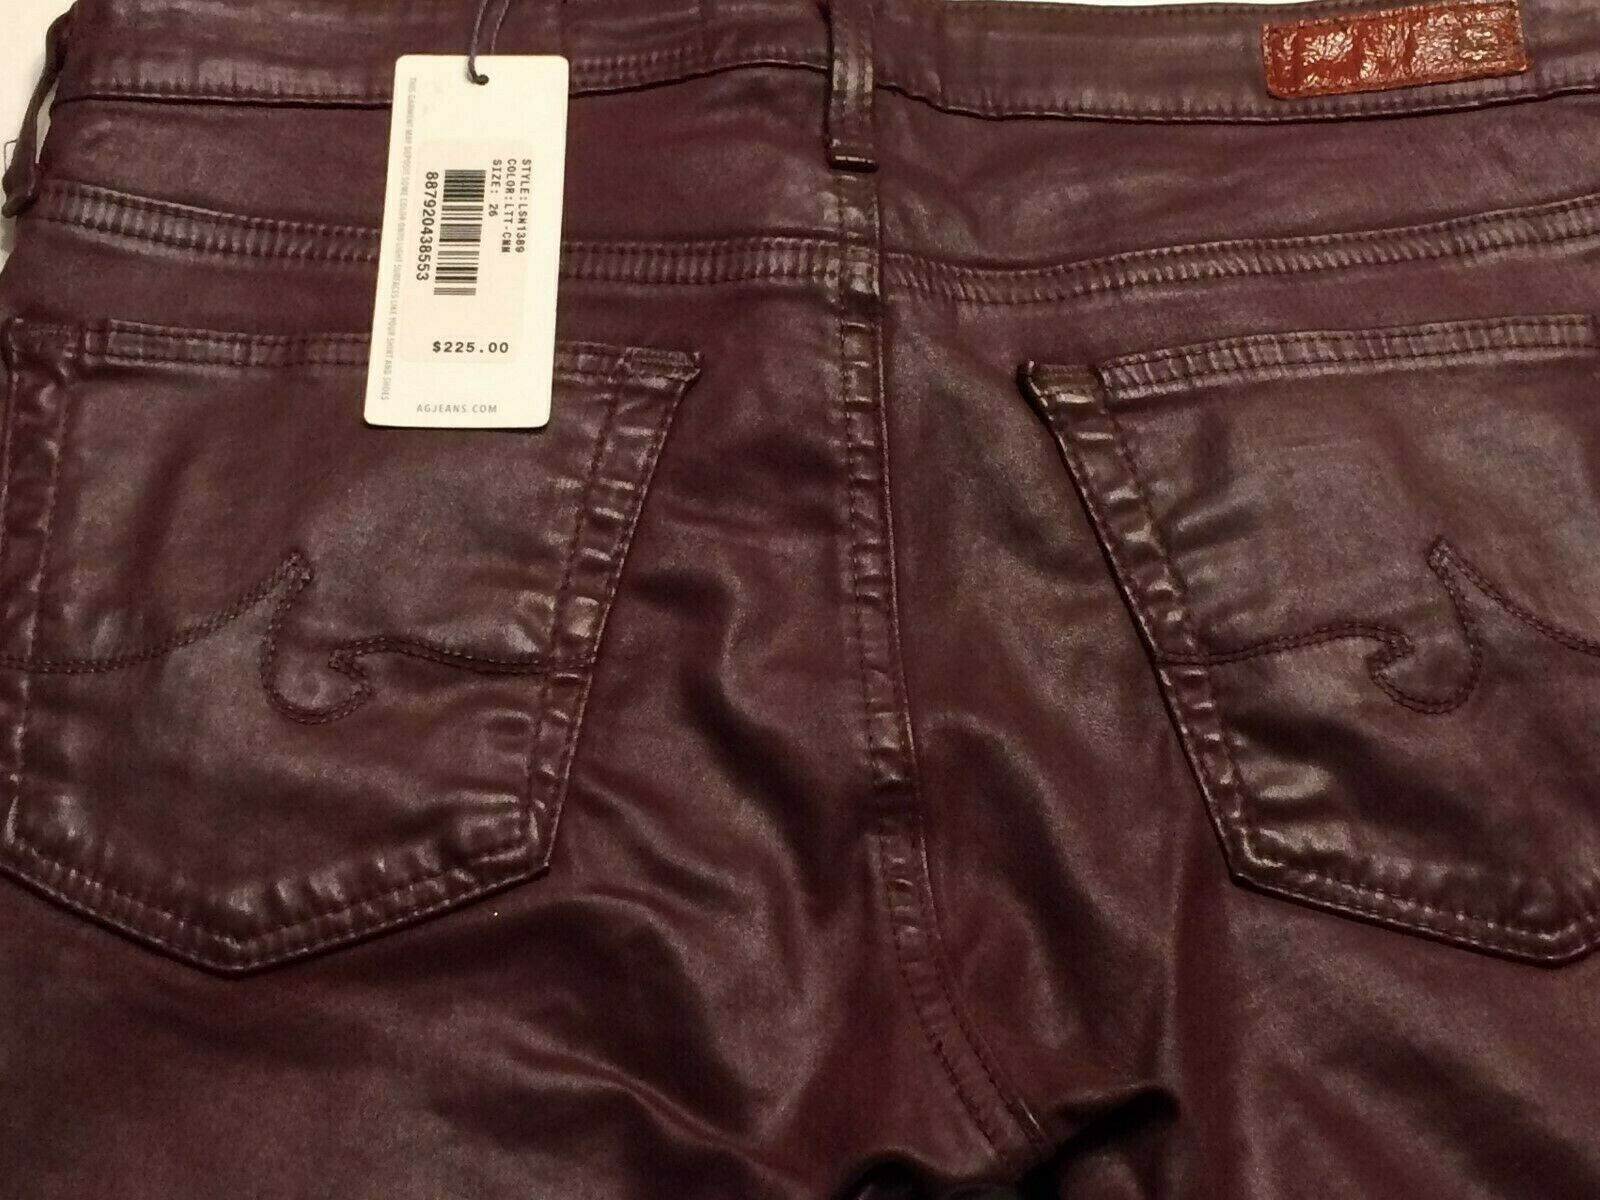 Adriano goldschmied Womens Legging Ankle Skinny Faux Leather Jeans  225 Size 26